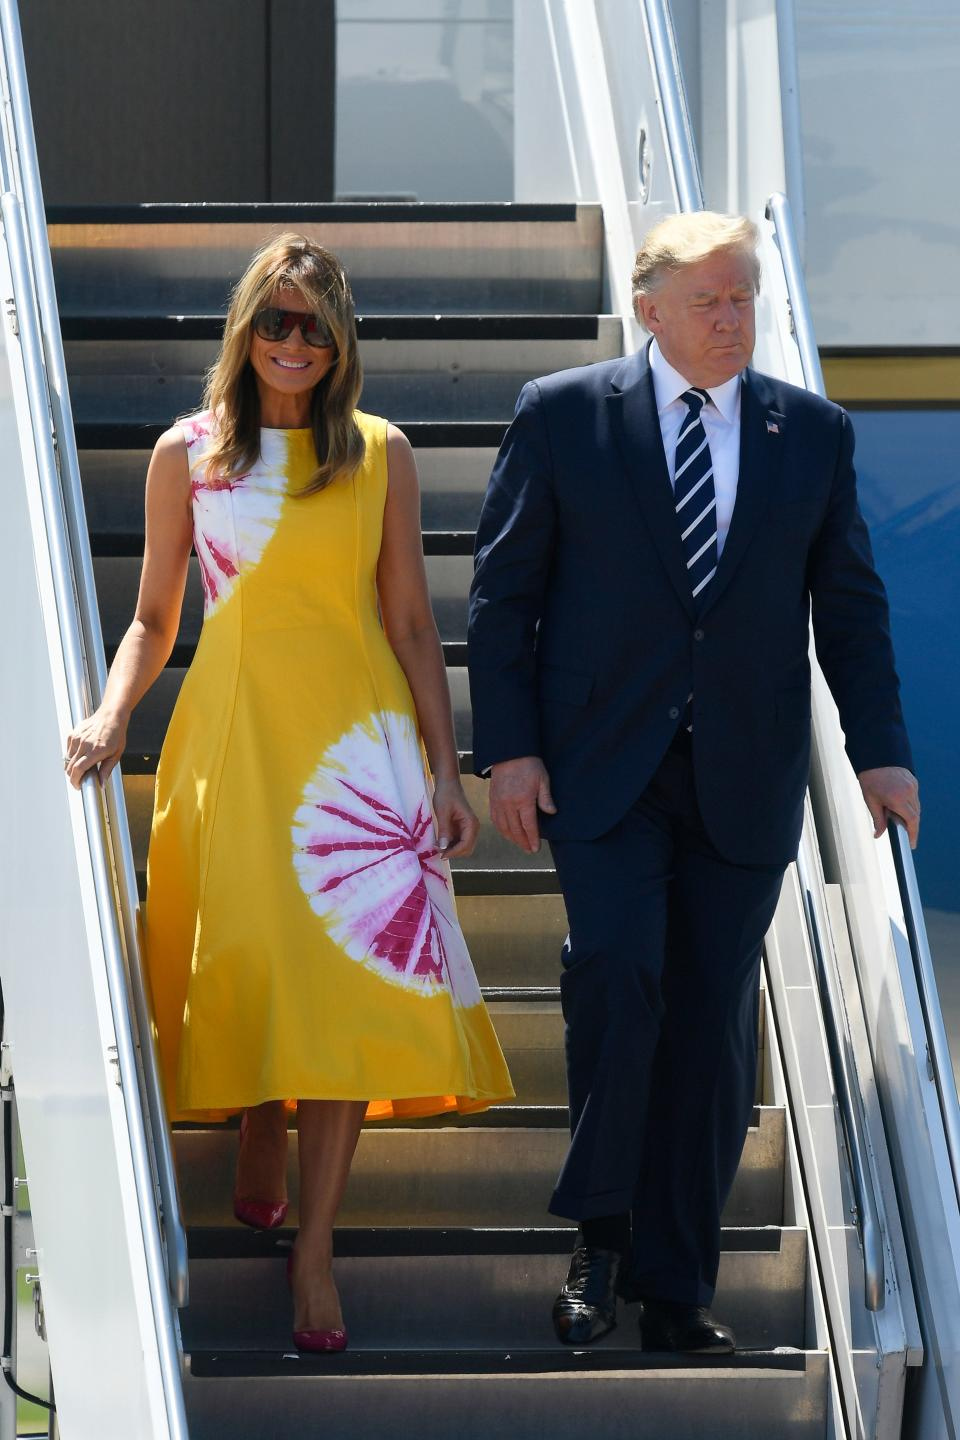 Donald and Melania arrive in Biarritz, south-west France, on August 24, 2019, for the first day of the annual G7 Summit. [Photo: Getty]